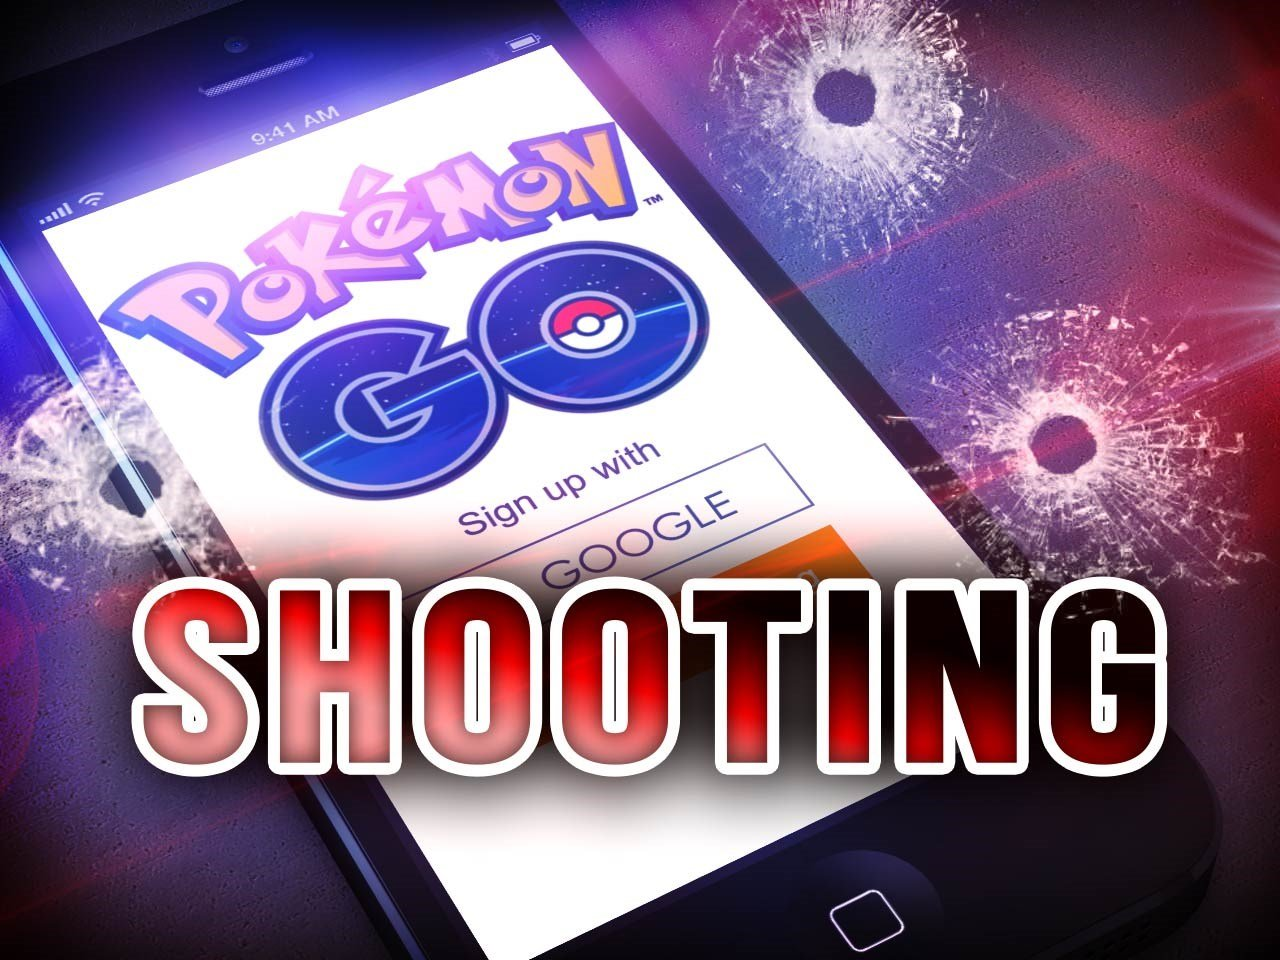 United States student shot dead while on Pokemon Go